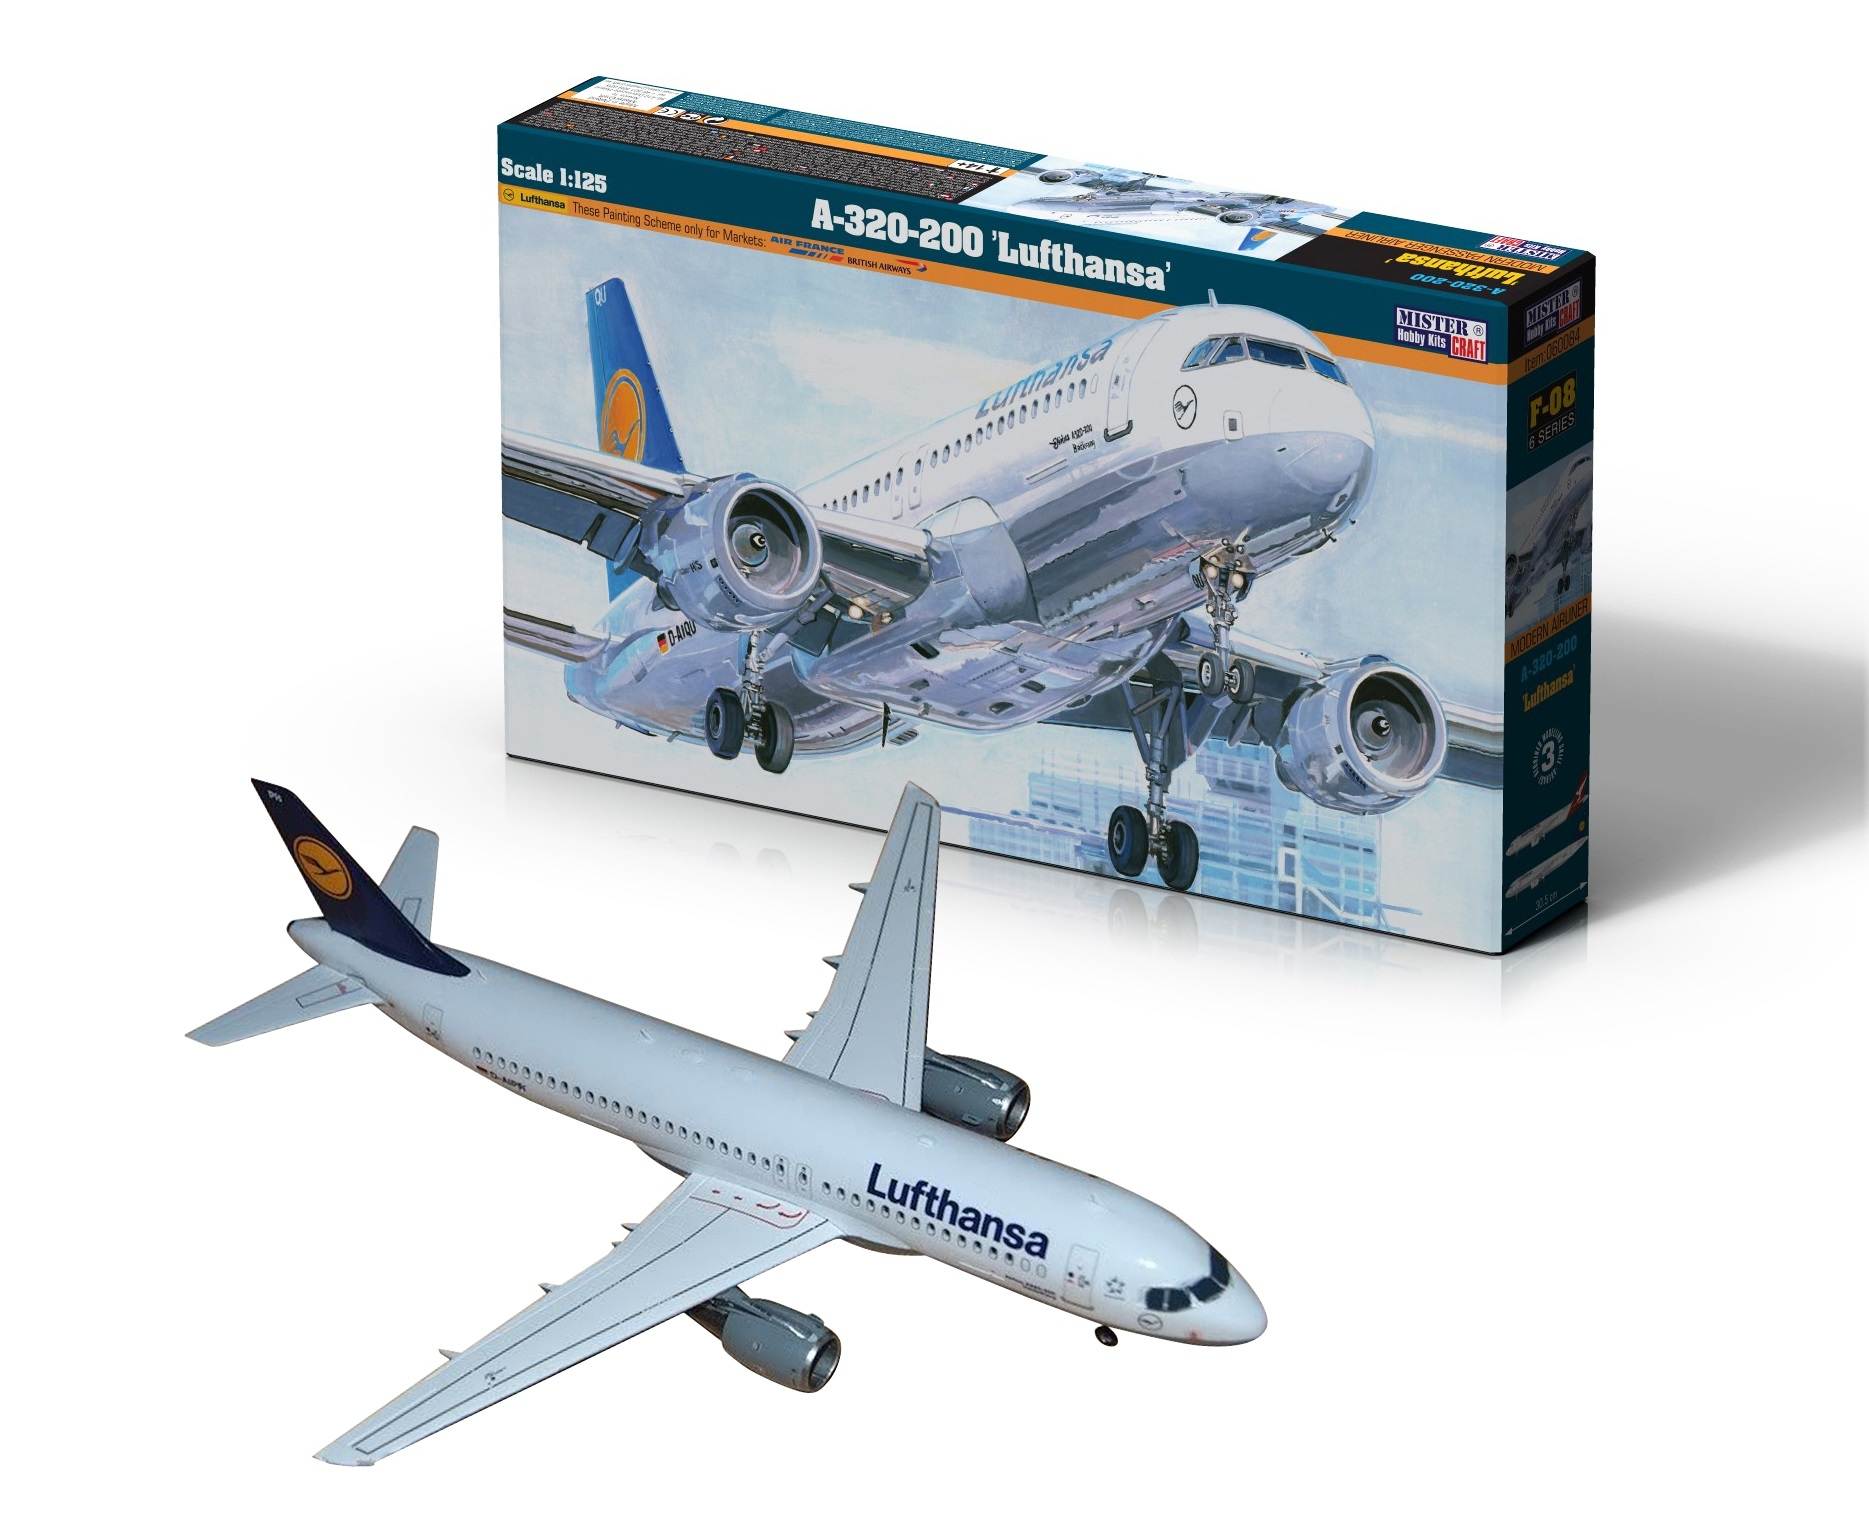 NEW ITEM! A-320-200 Lufthansa and Qantas Airways